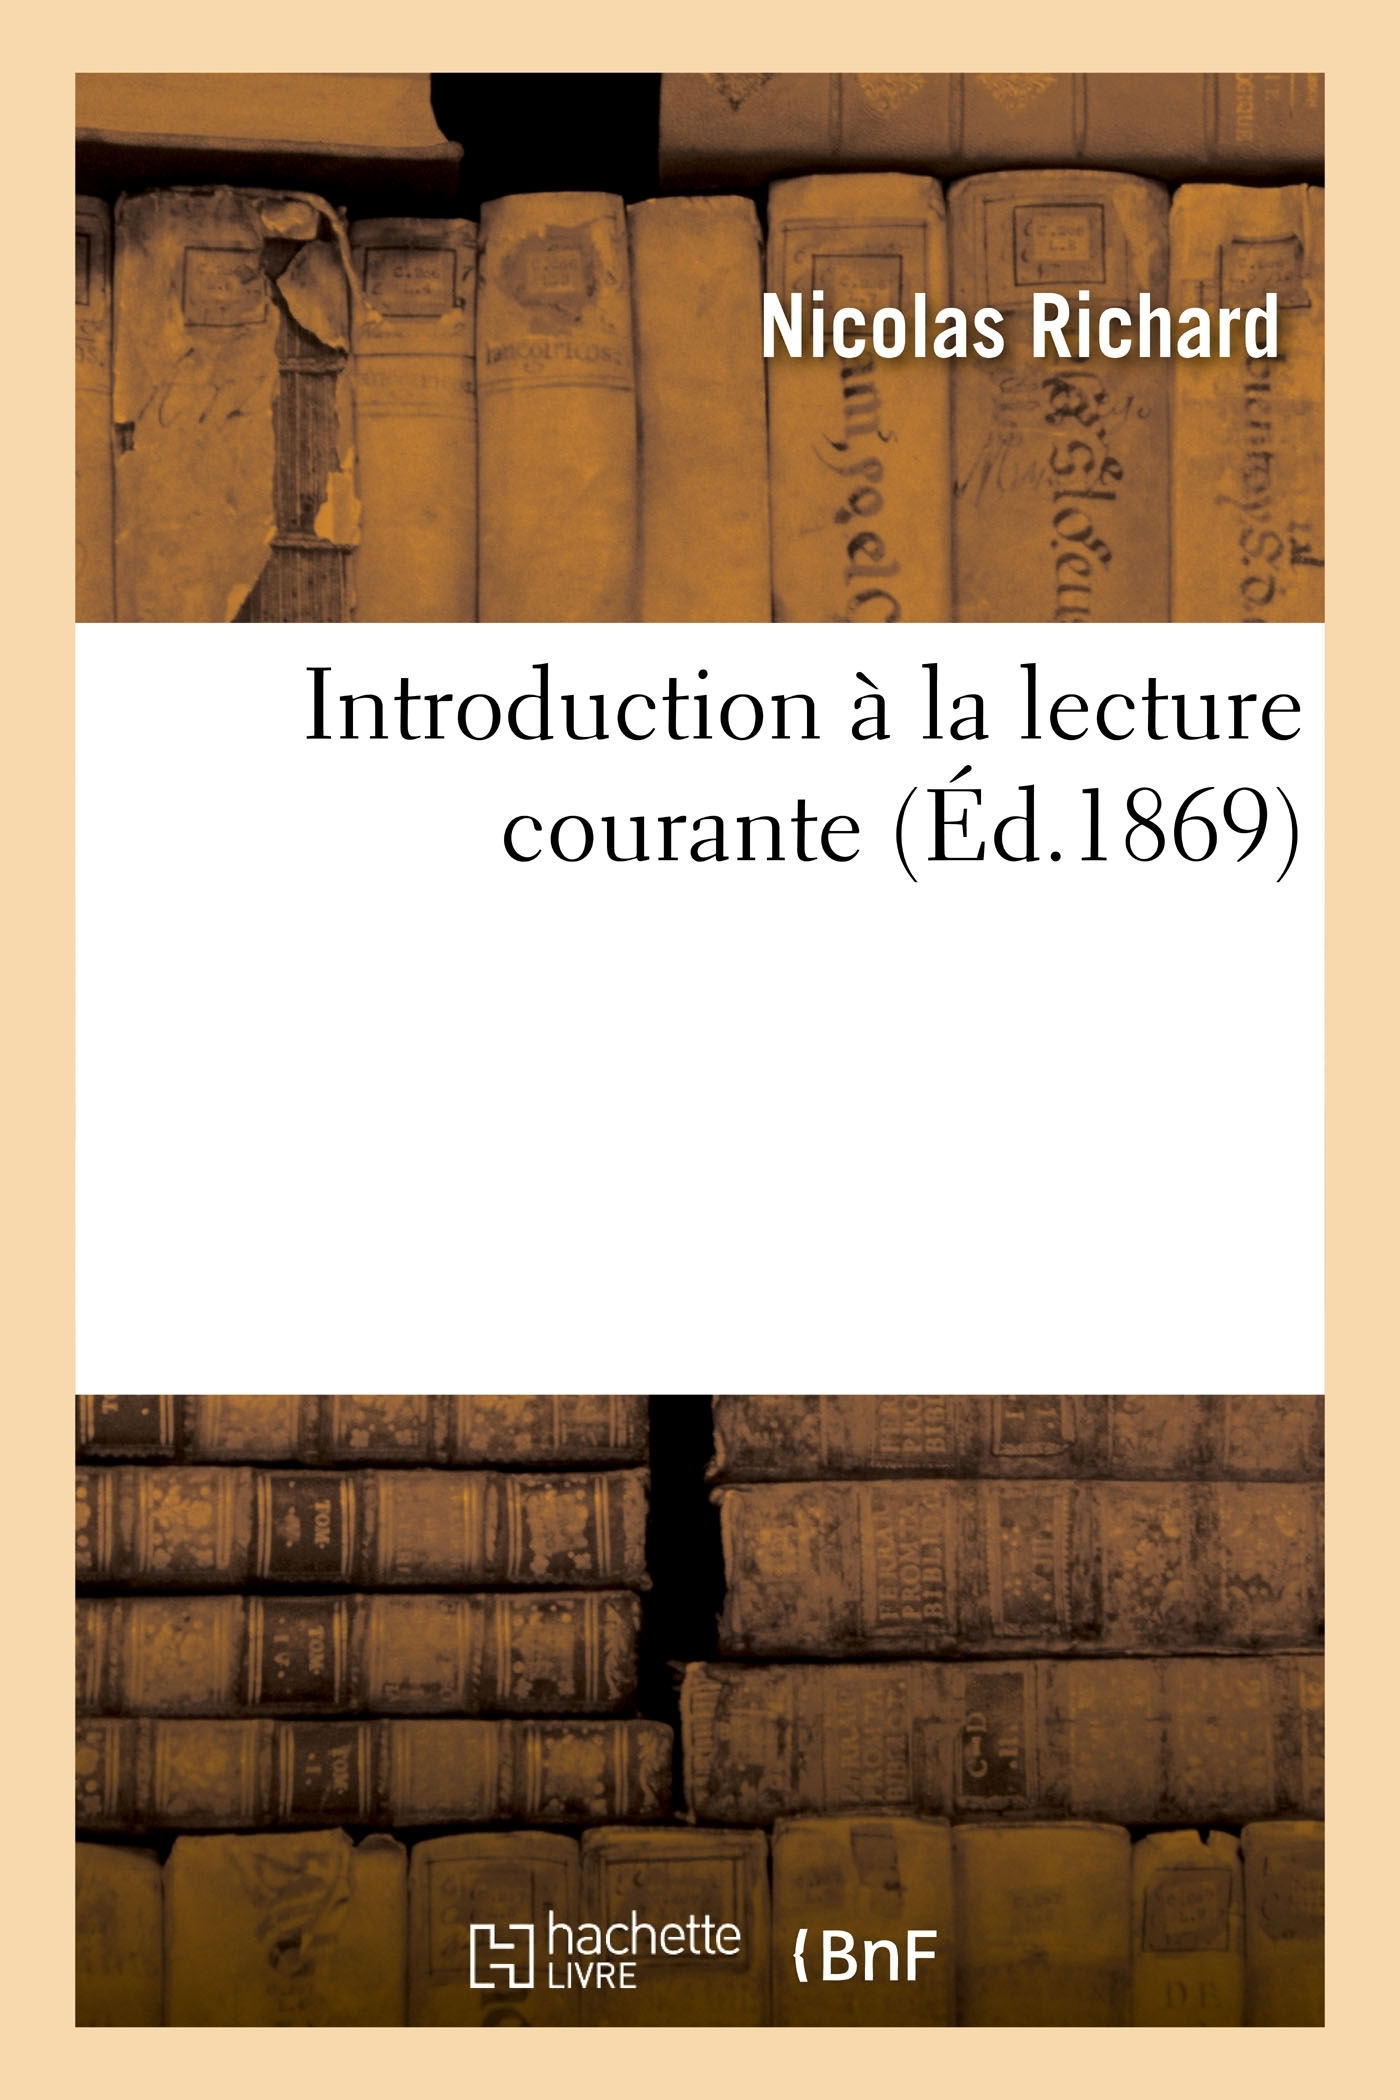 INTRODUCTION A LA LECTURE COURANTE